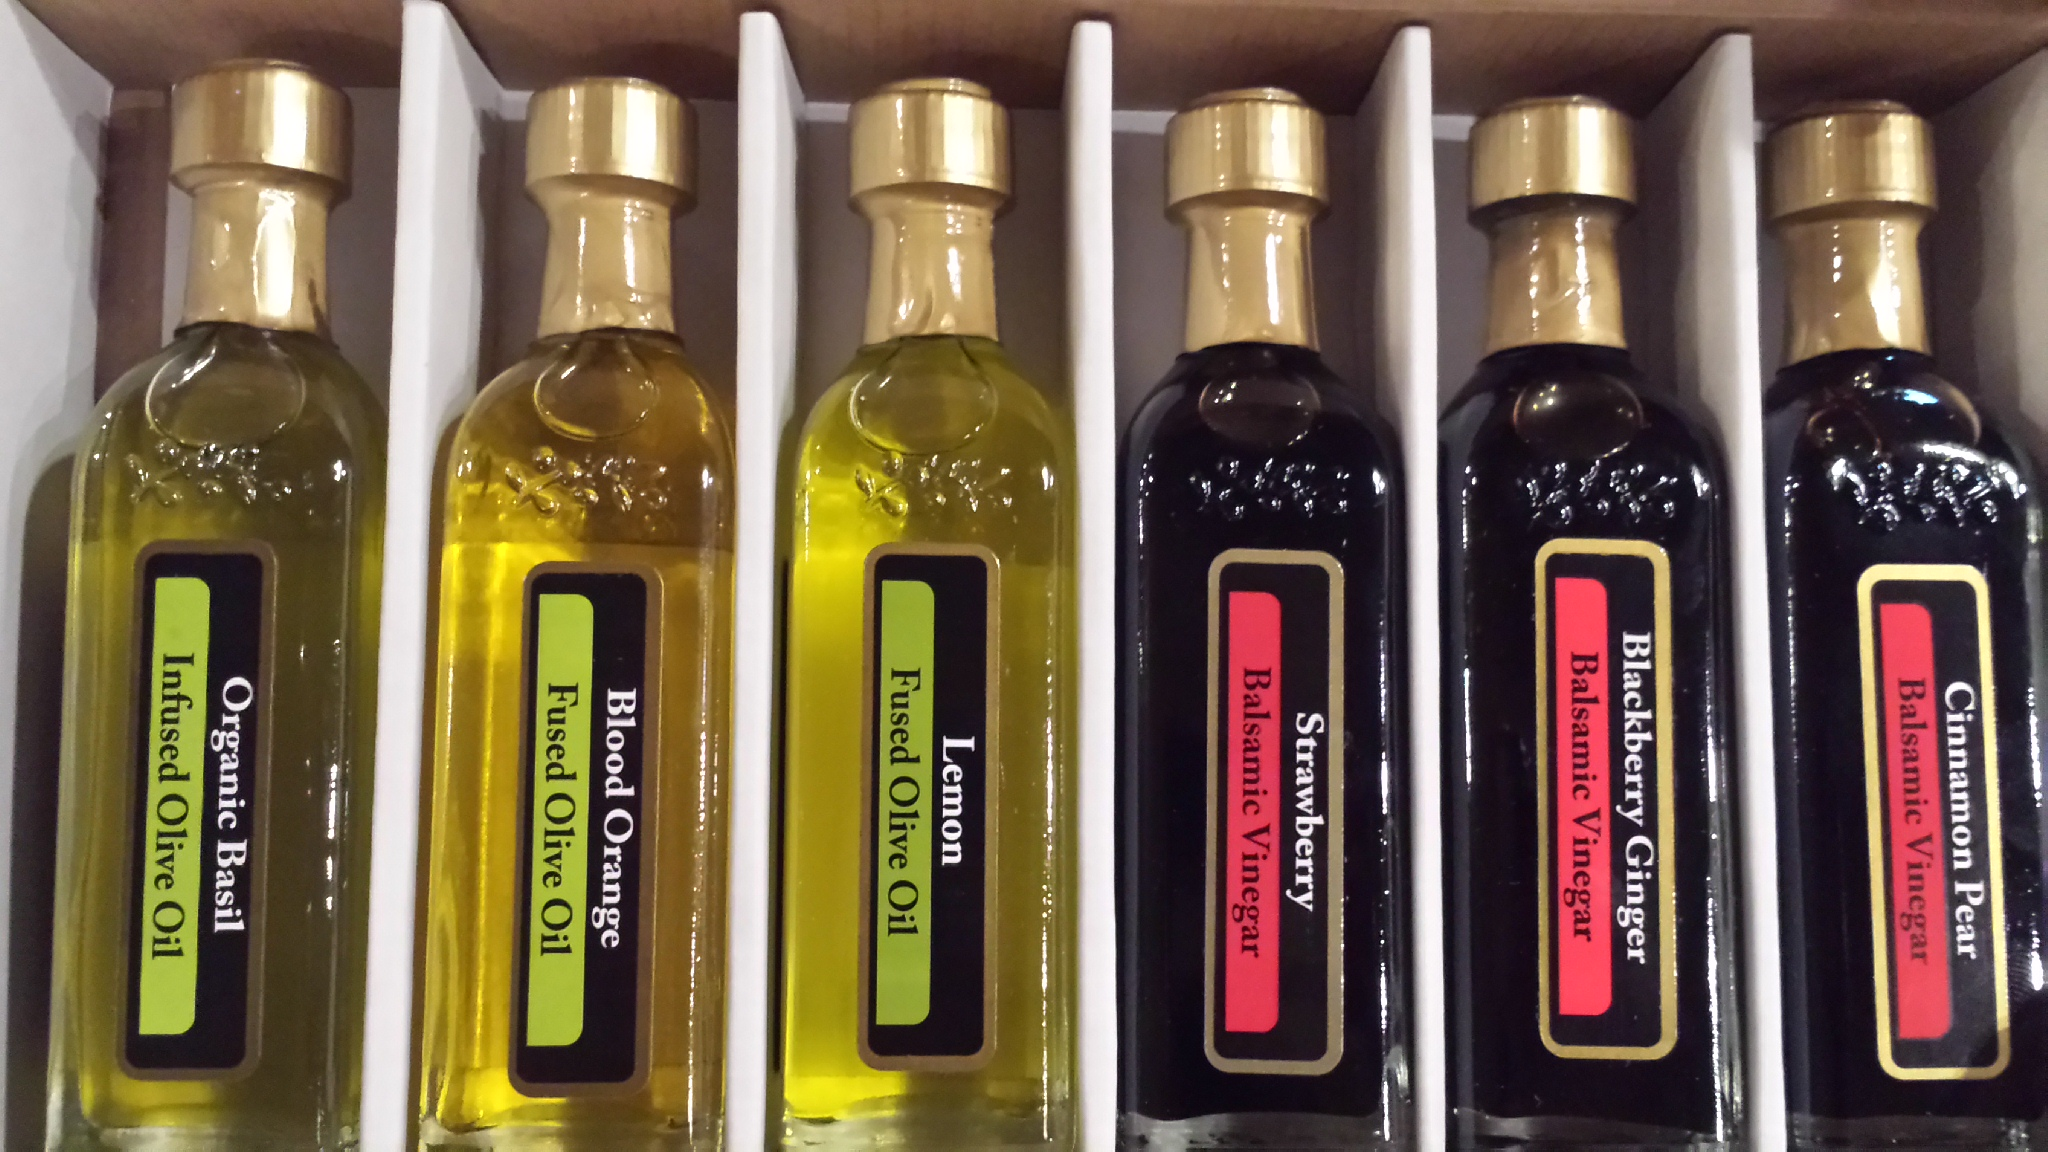 Citrus 6 bottle pack of olive oils and vinegars